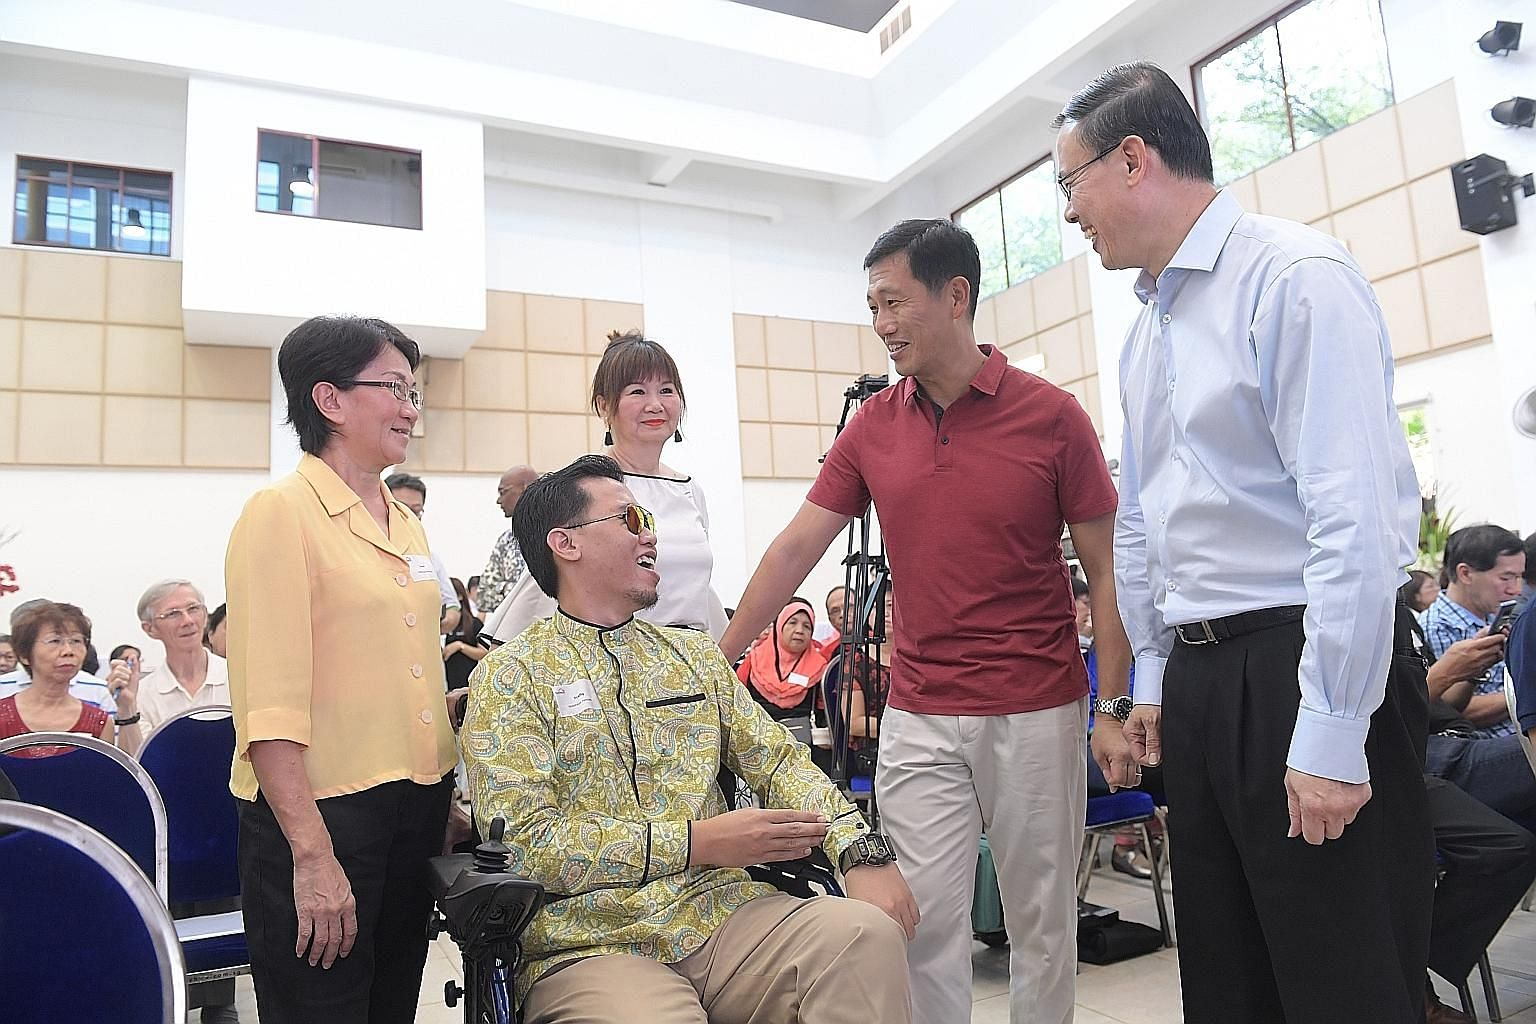 Education Minister Ong Ye Kung and Mayor of North West District, Dr Teo Ho Pin, with Mr Muhammad Syafiq Mohammad Ali, Ms Jessie Tay (left), 61, and Ms Pauline Chan, 62, at yesterday's event.